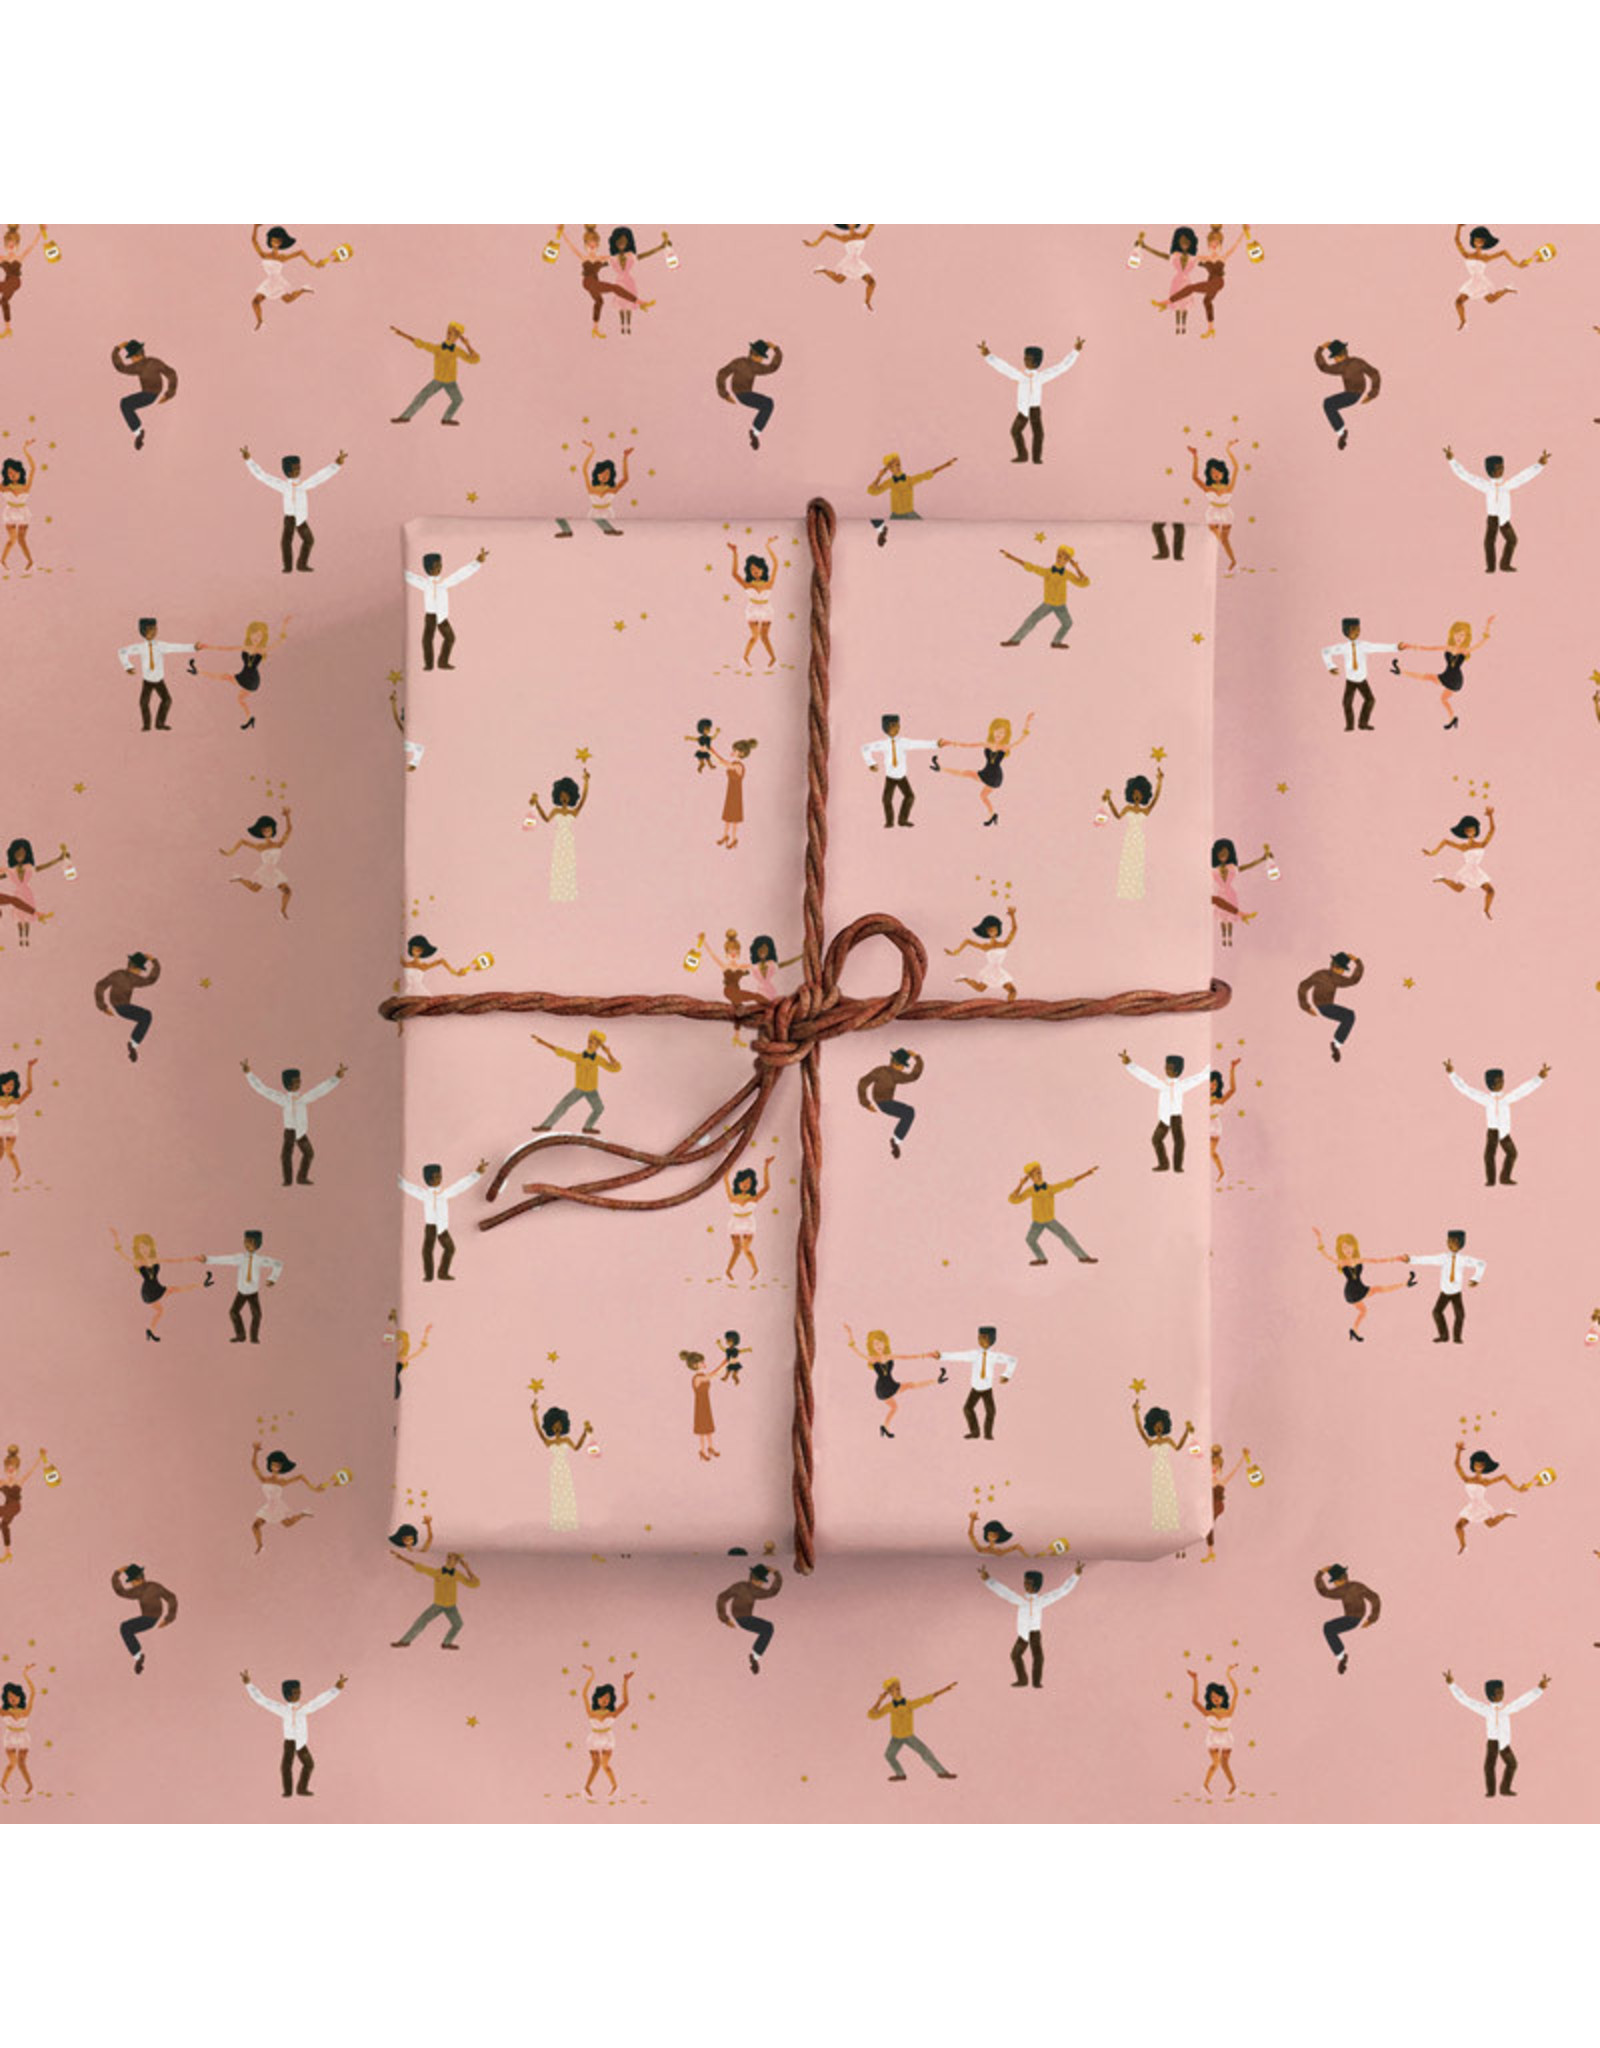 ATWS Gift wrapping - Dancers - 2 sheets - 500 x 700mm - 100gsm paper